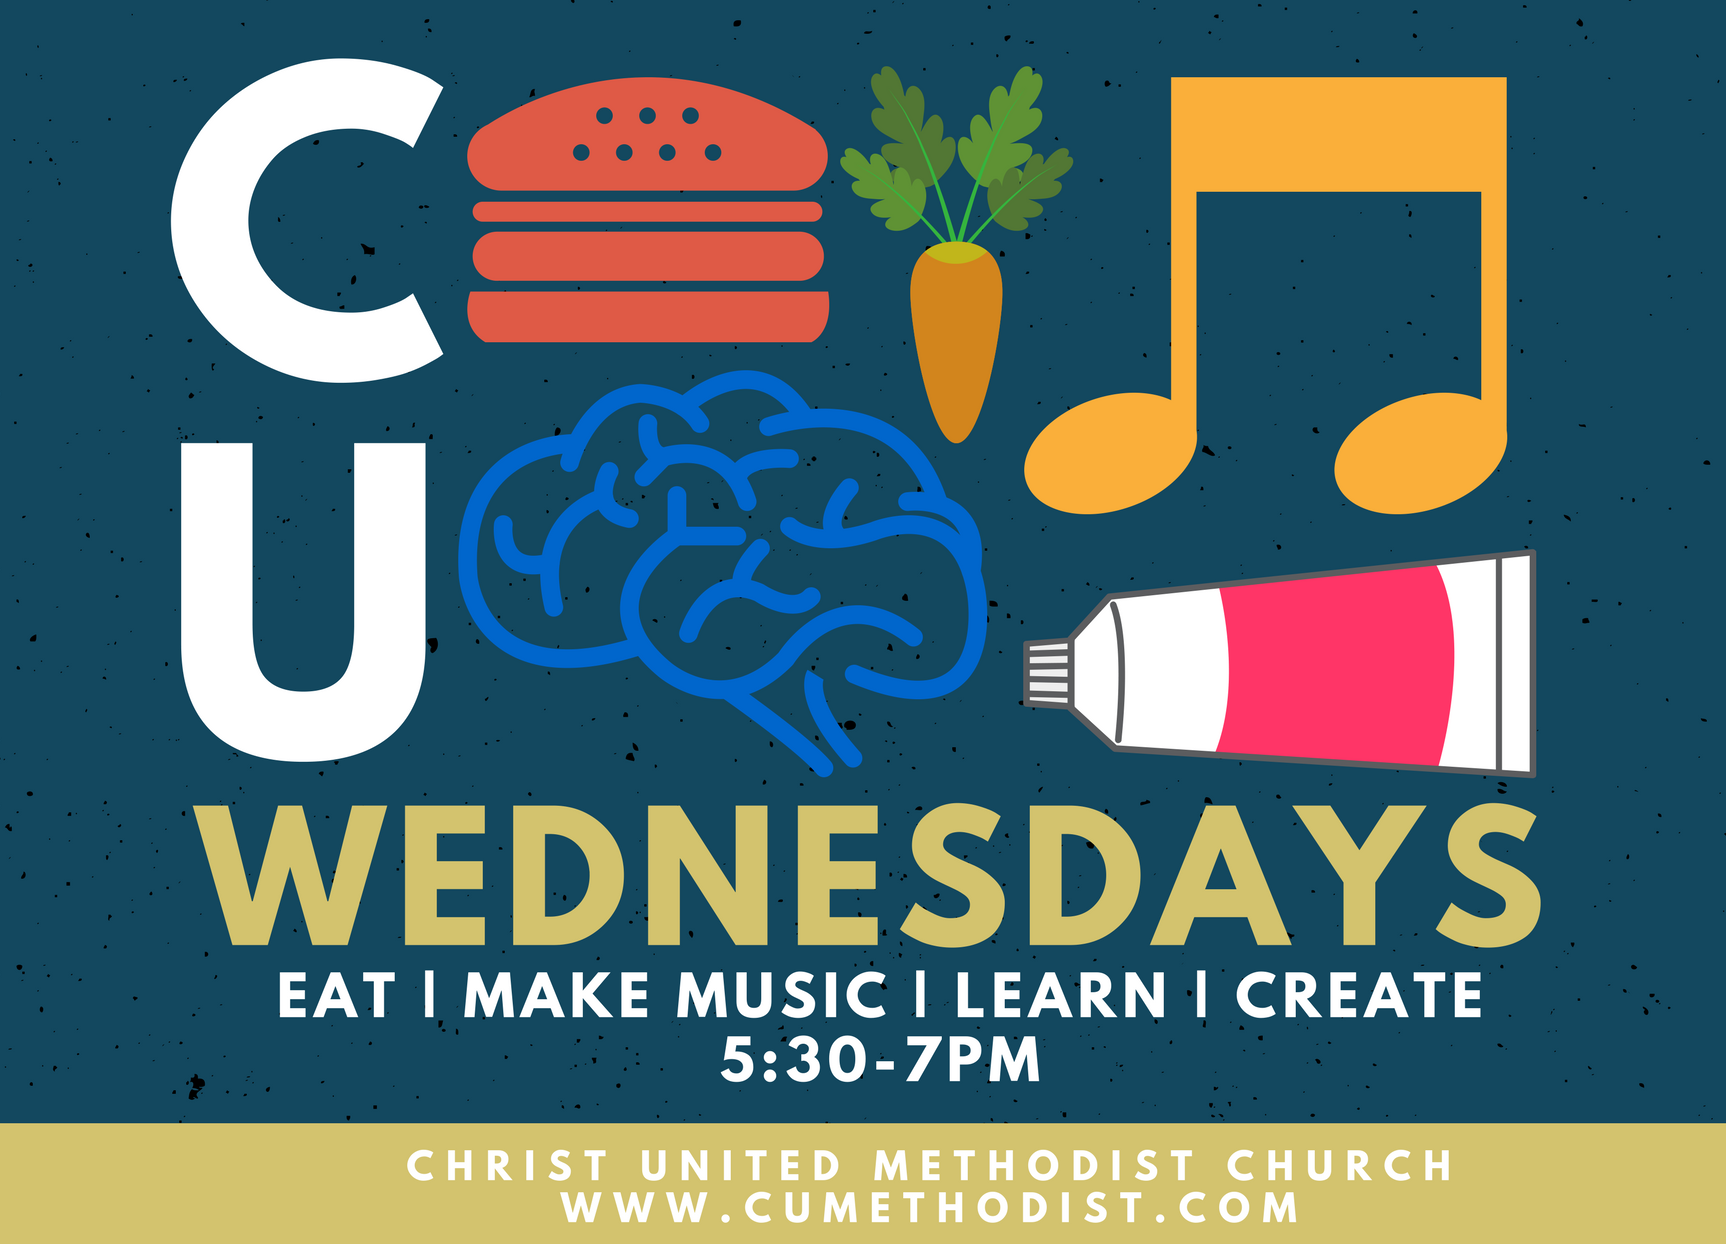 C U Wednesdays logo (1).png